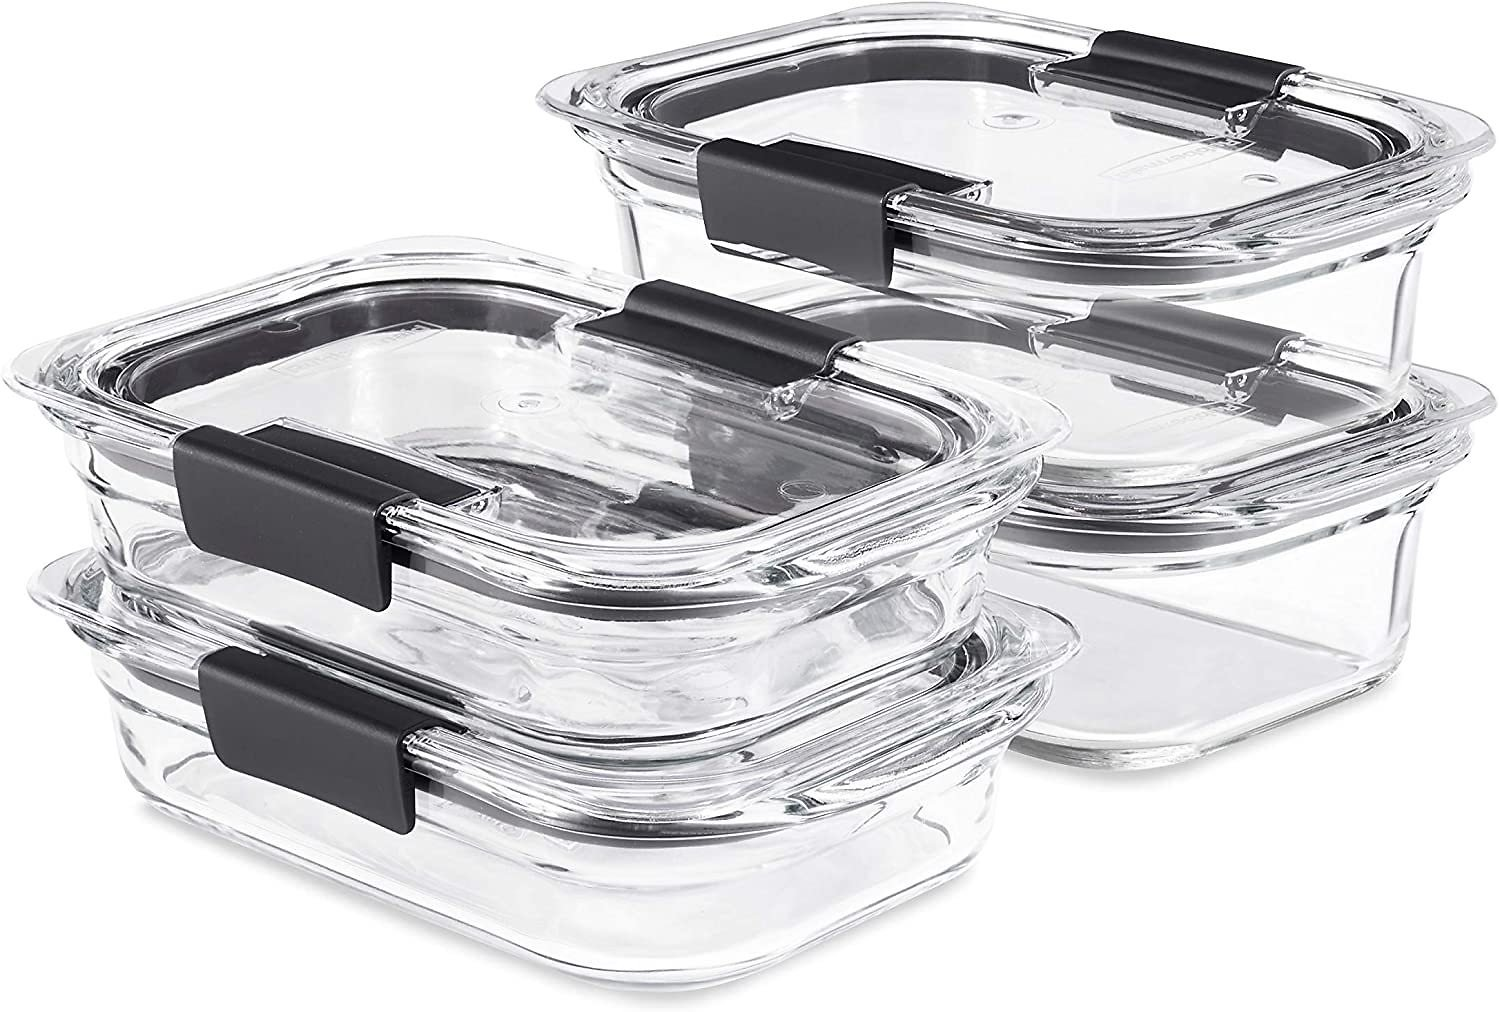 4-Set Rubbermaid Brilliance Glass Storage Food Containers with Lids for $23.57